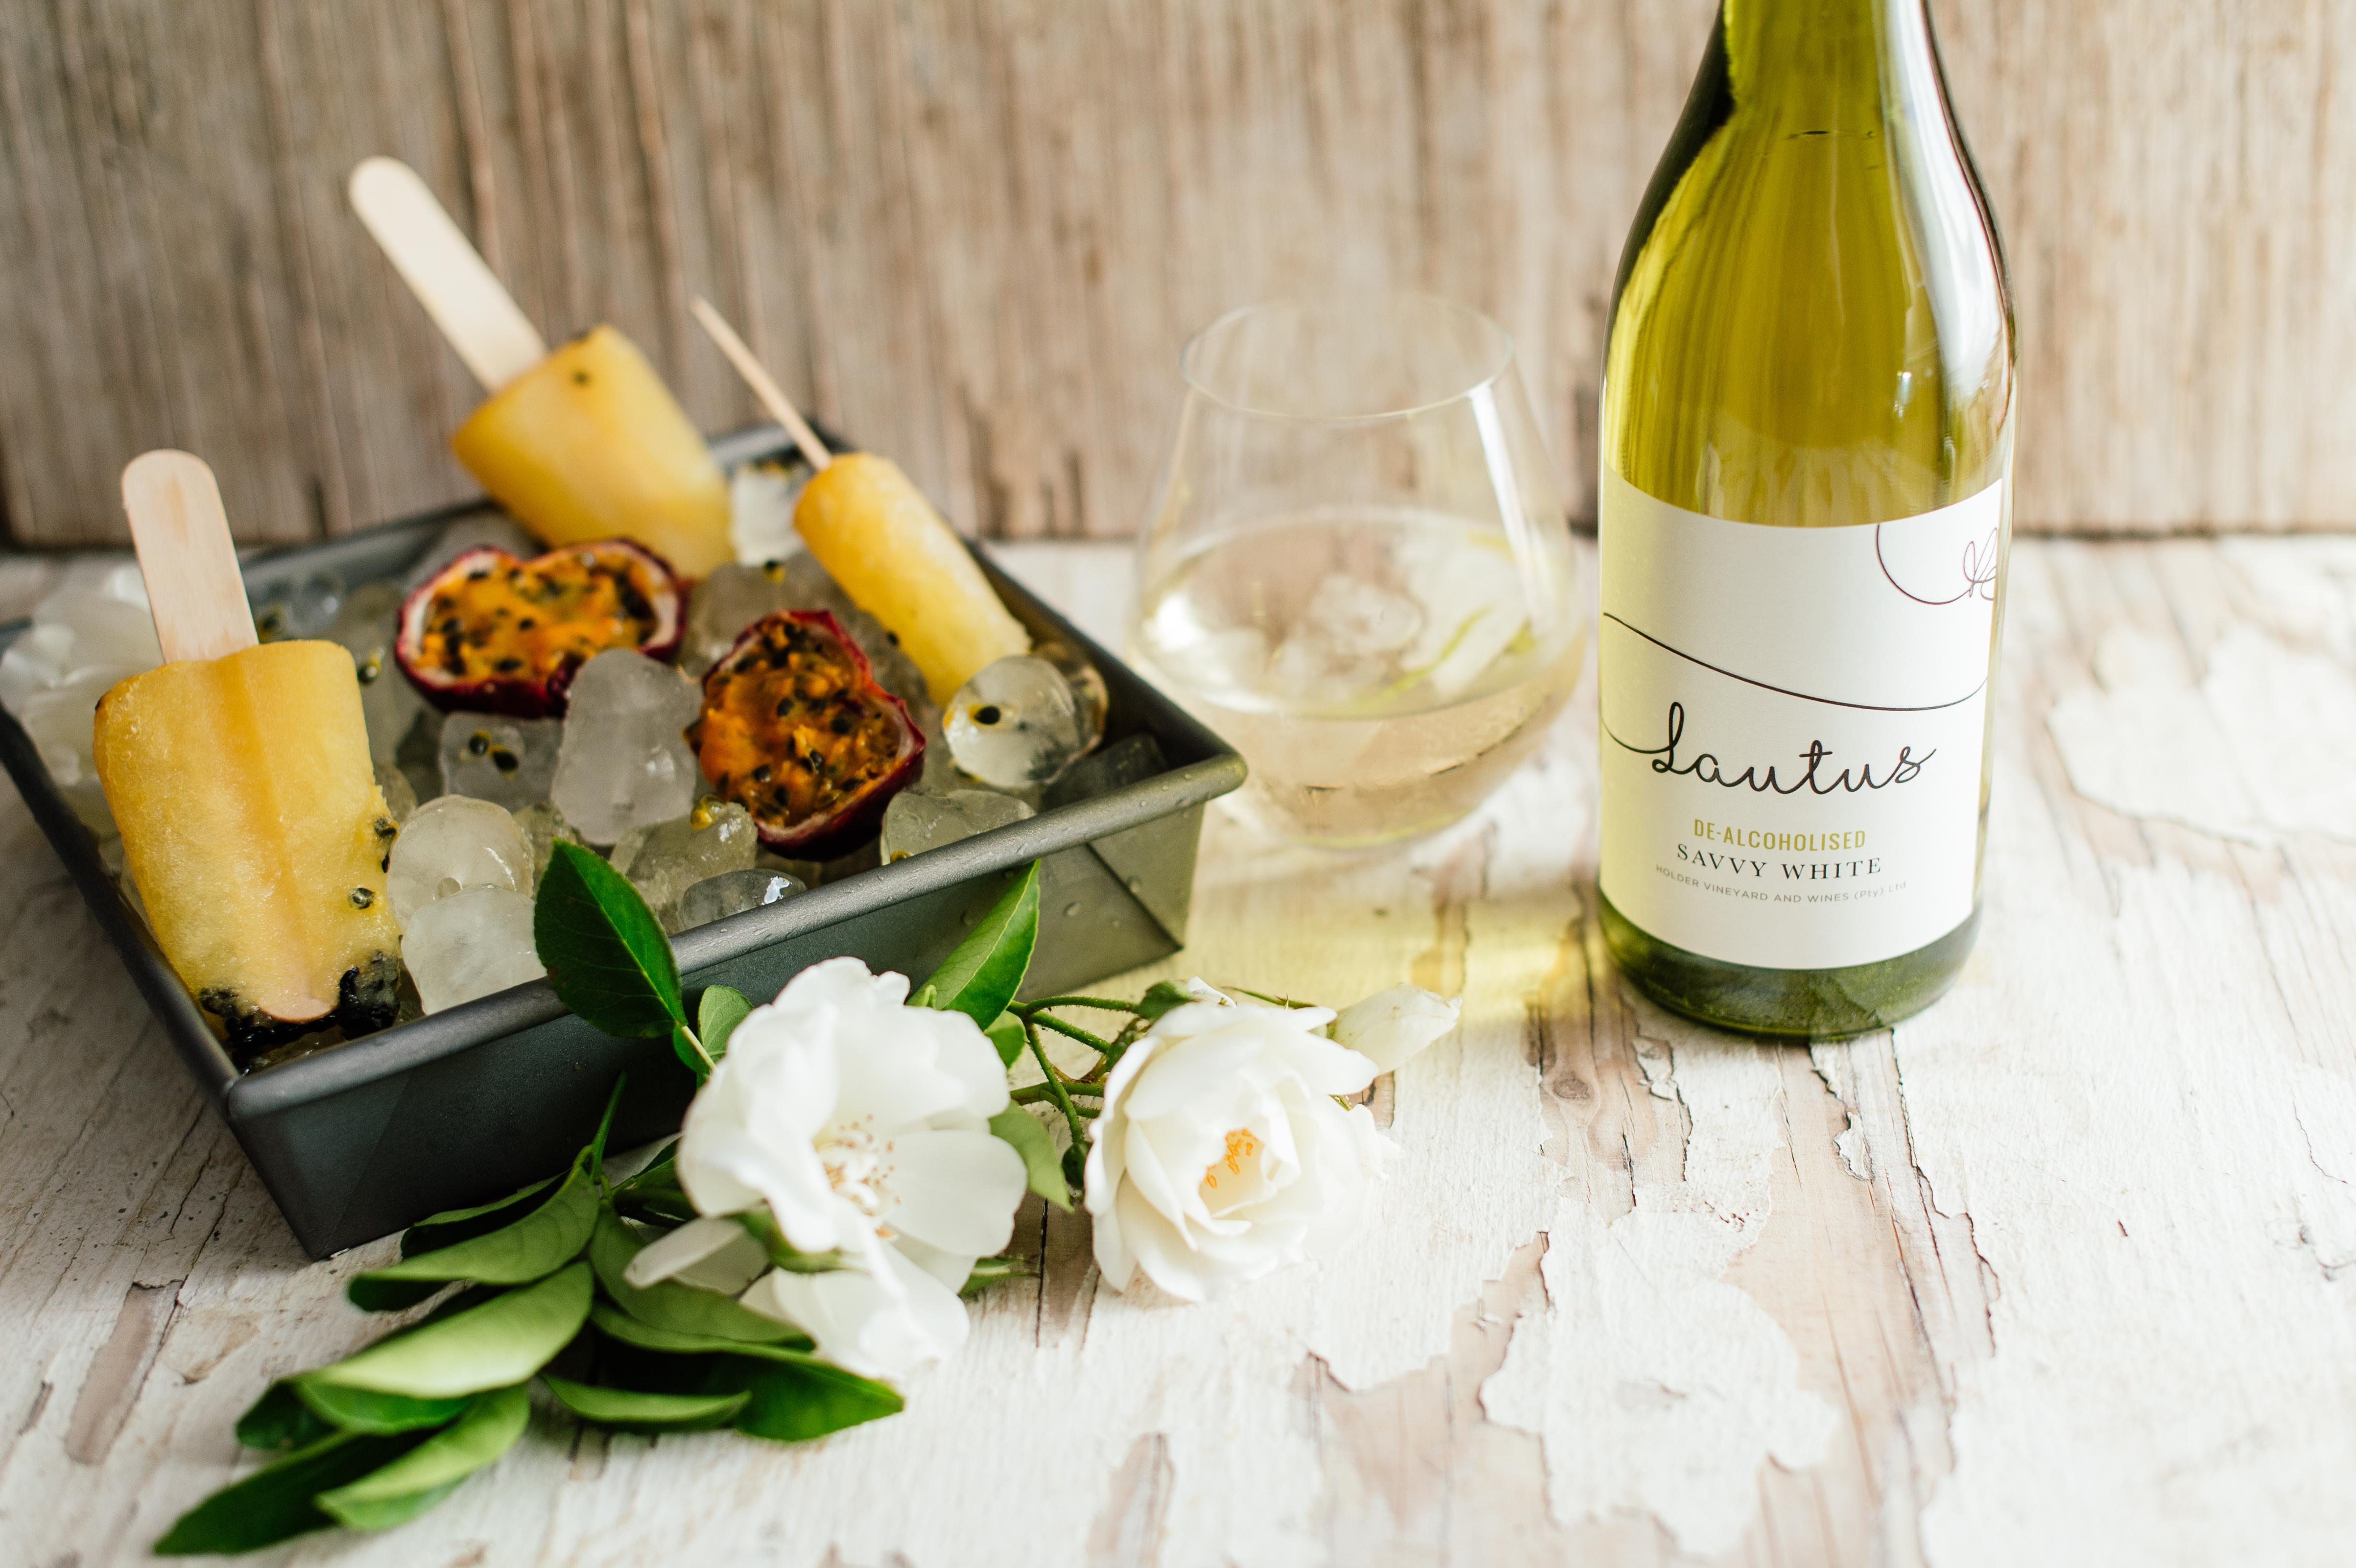 Lautus Savvy White Talks About Their Alcohol-free White Wine photo